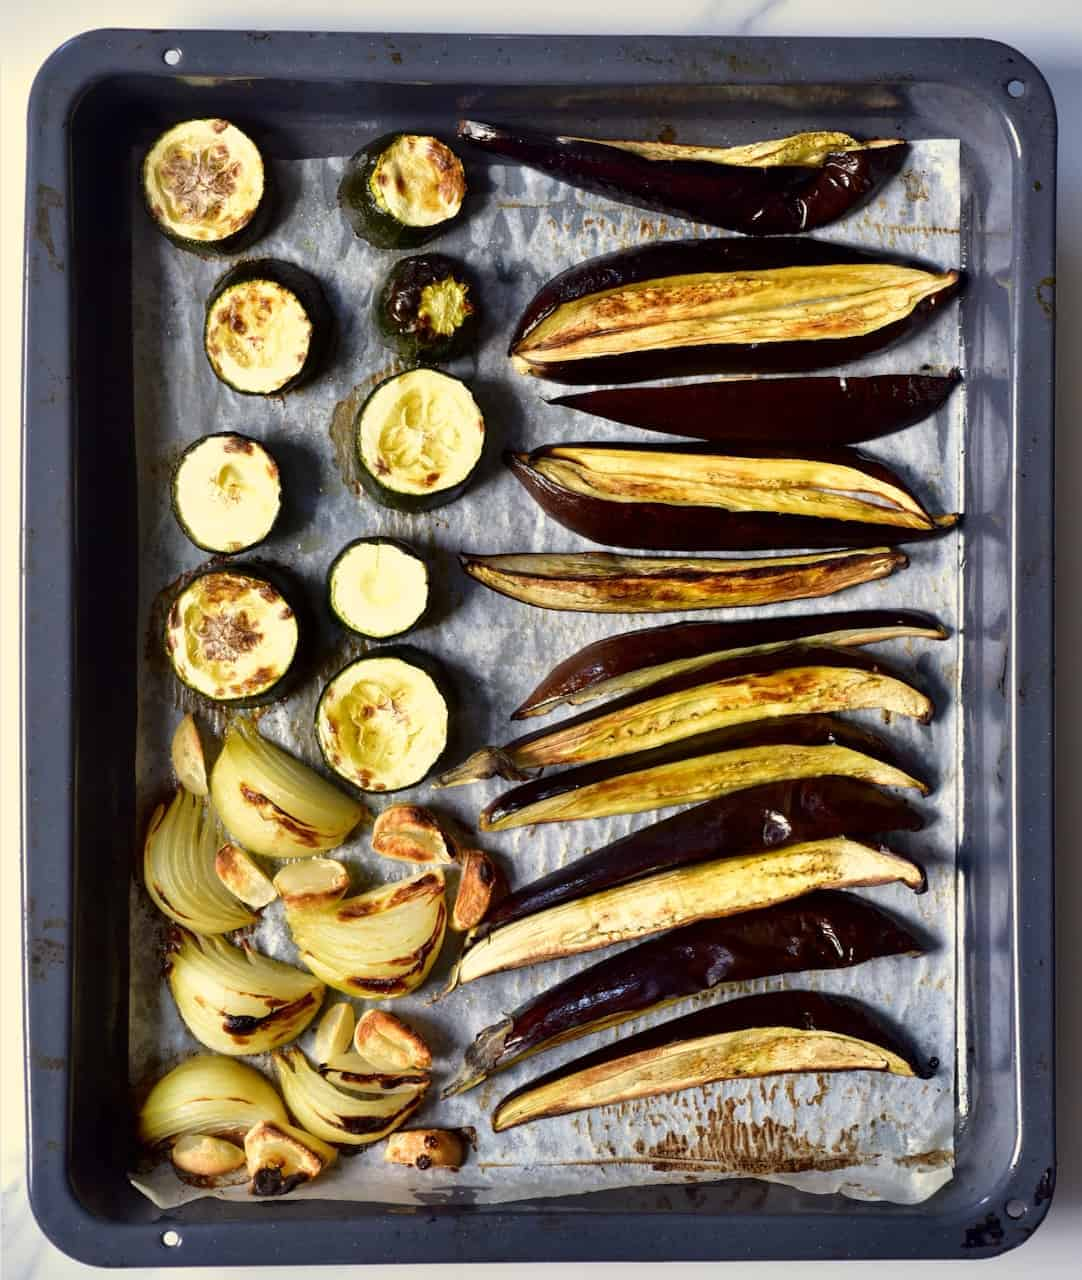 roasted tray of soft vegetables